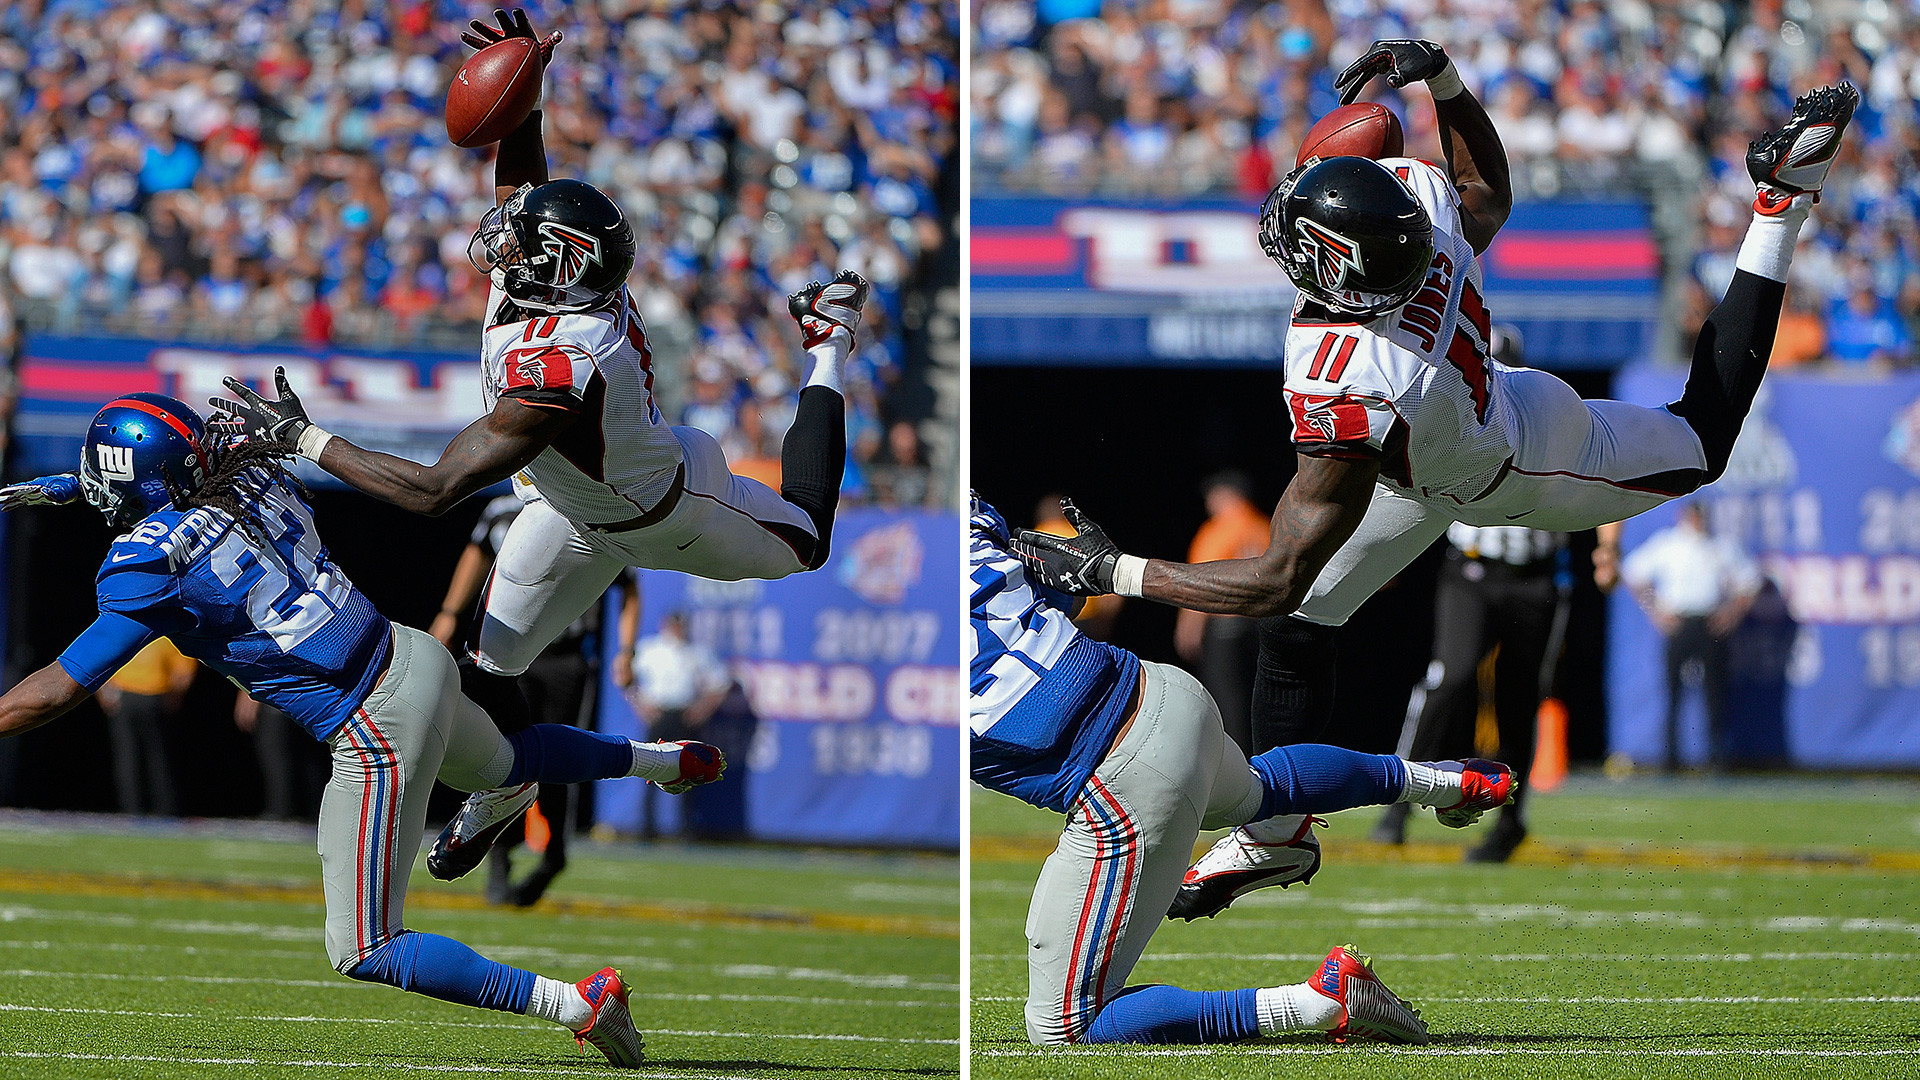 NFL Week 2 highlights: Wild plays from Julio Jones, Cam Newton, others |  NFL | Sporting News